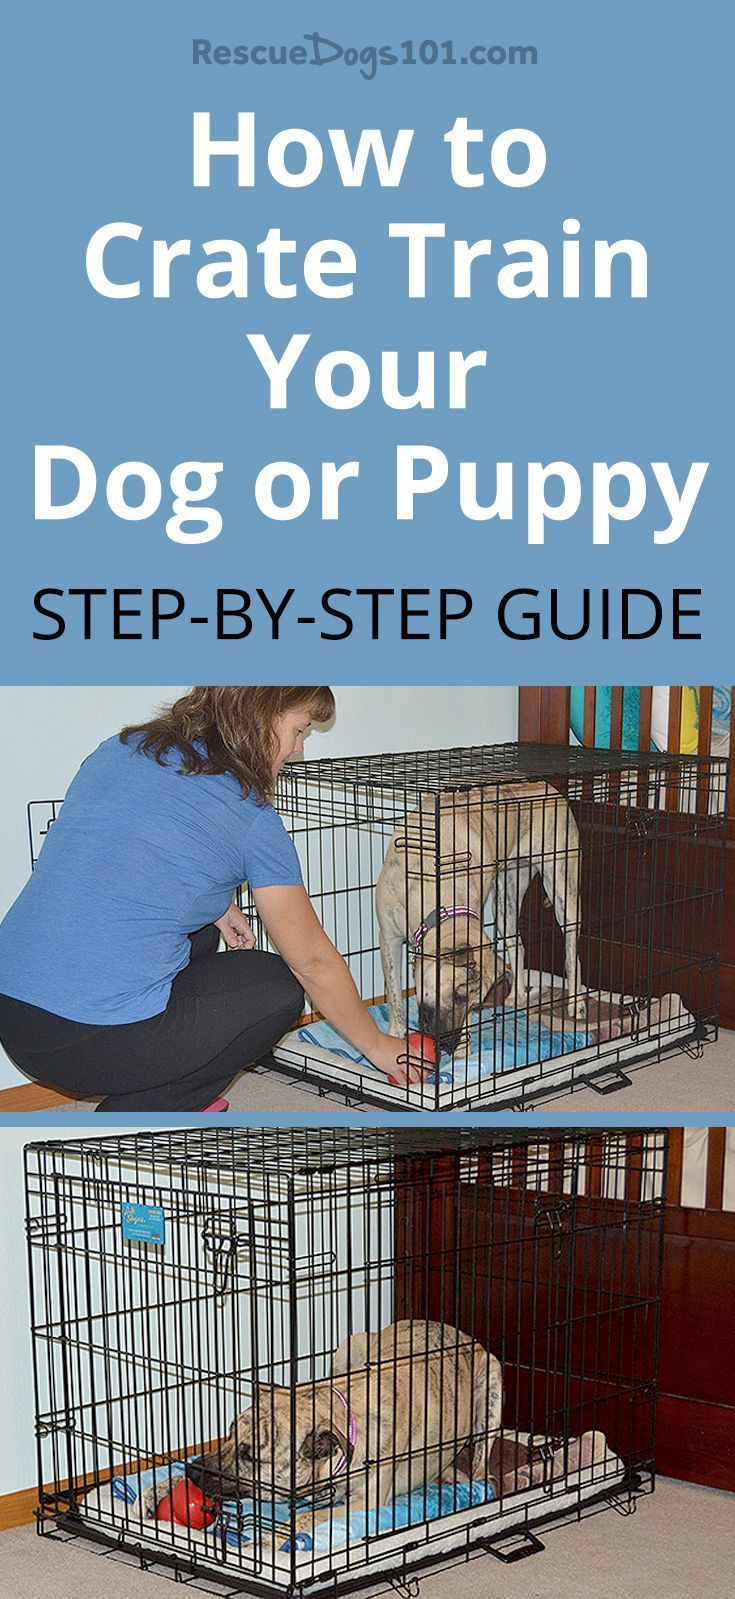 How To Crate Train Your Dog Or Puppy In 3 Easy Steps Training